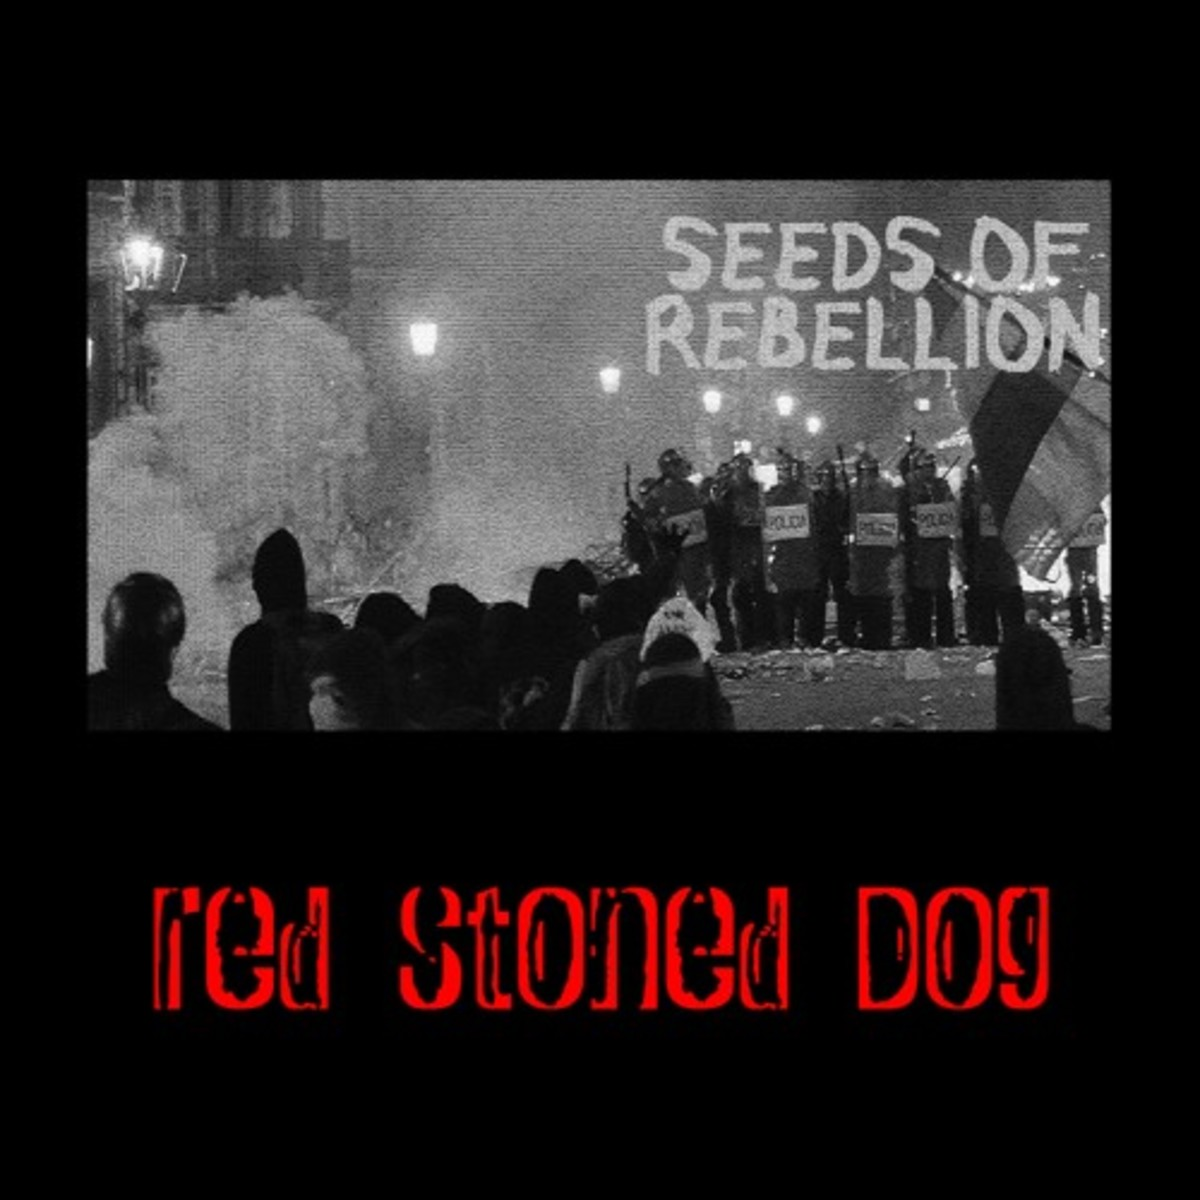 """Track artwork for Red Stoned Dog's new single, """"Seeds of Rebellion"""""""